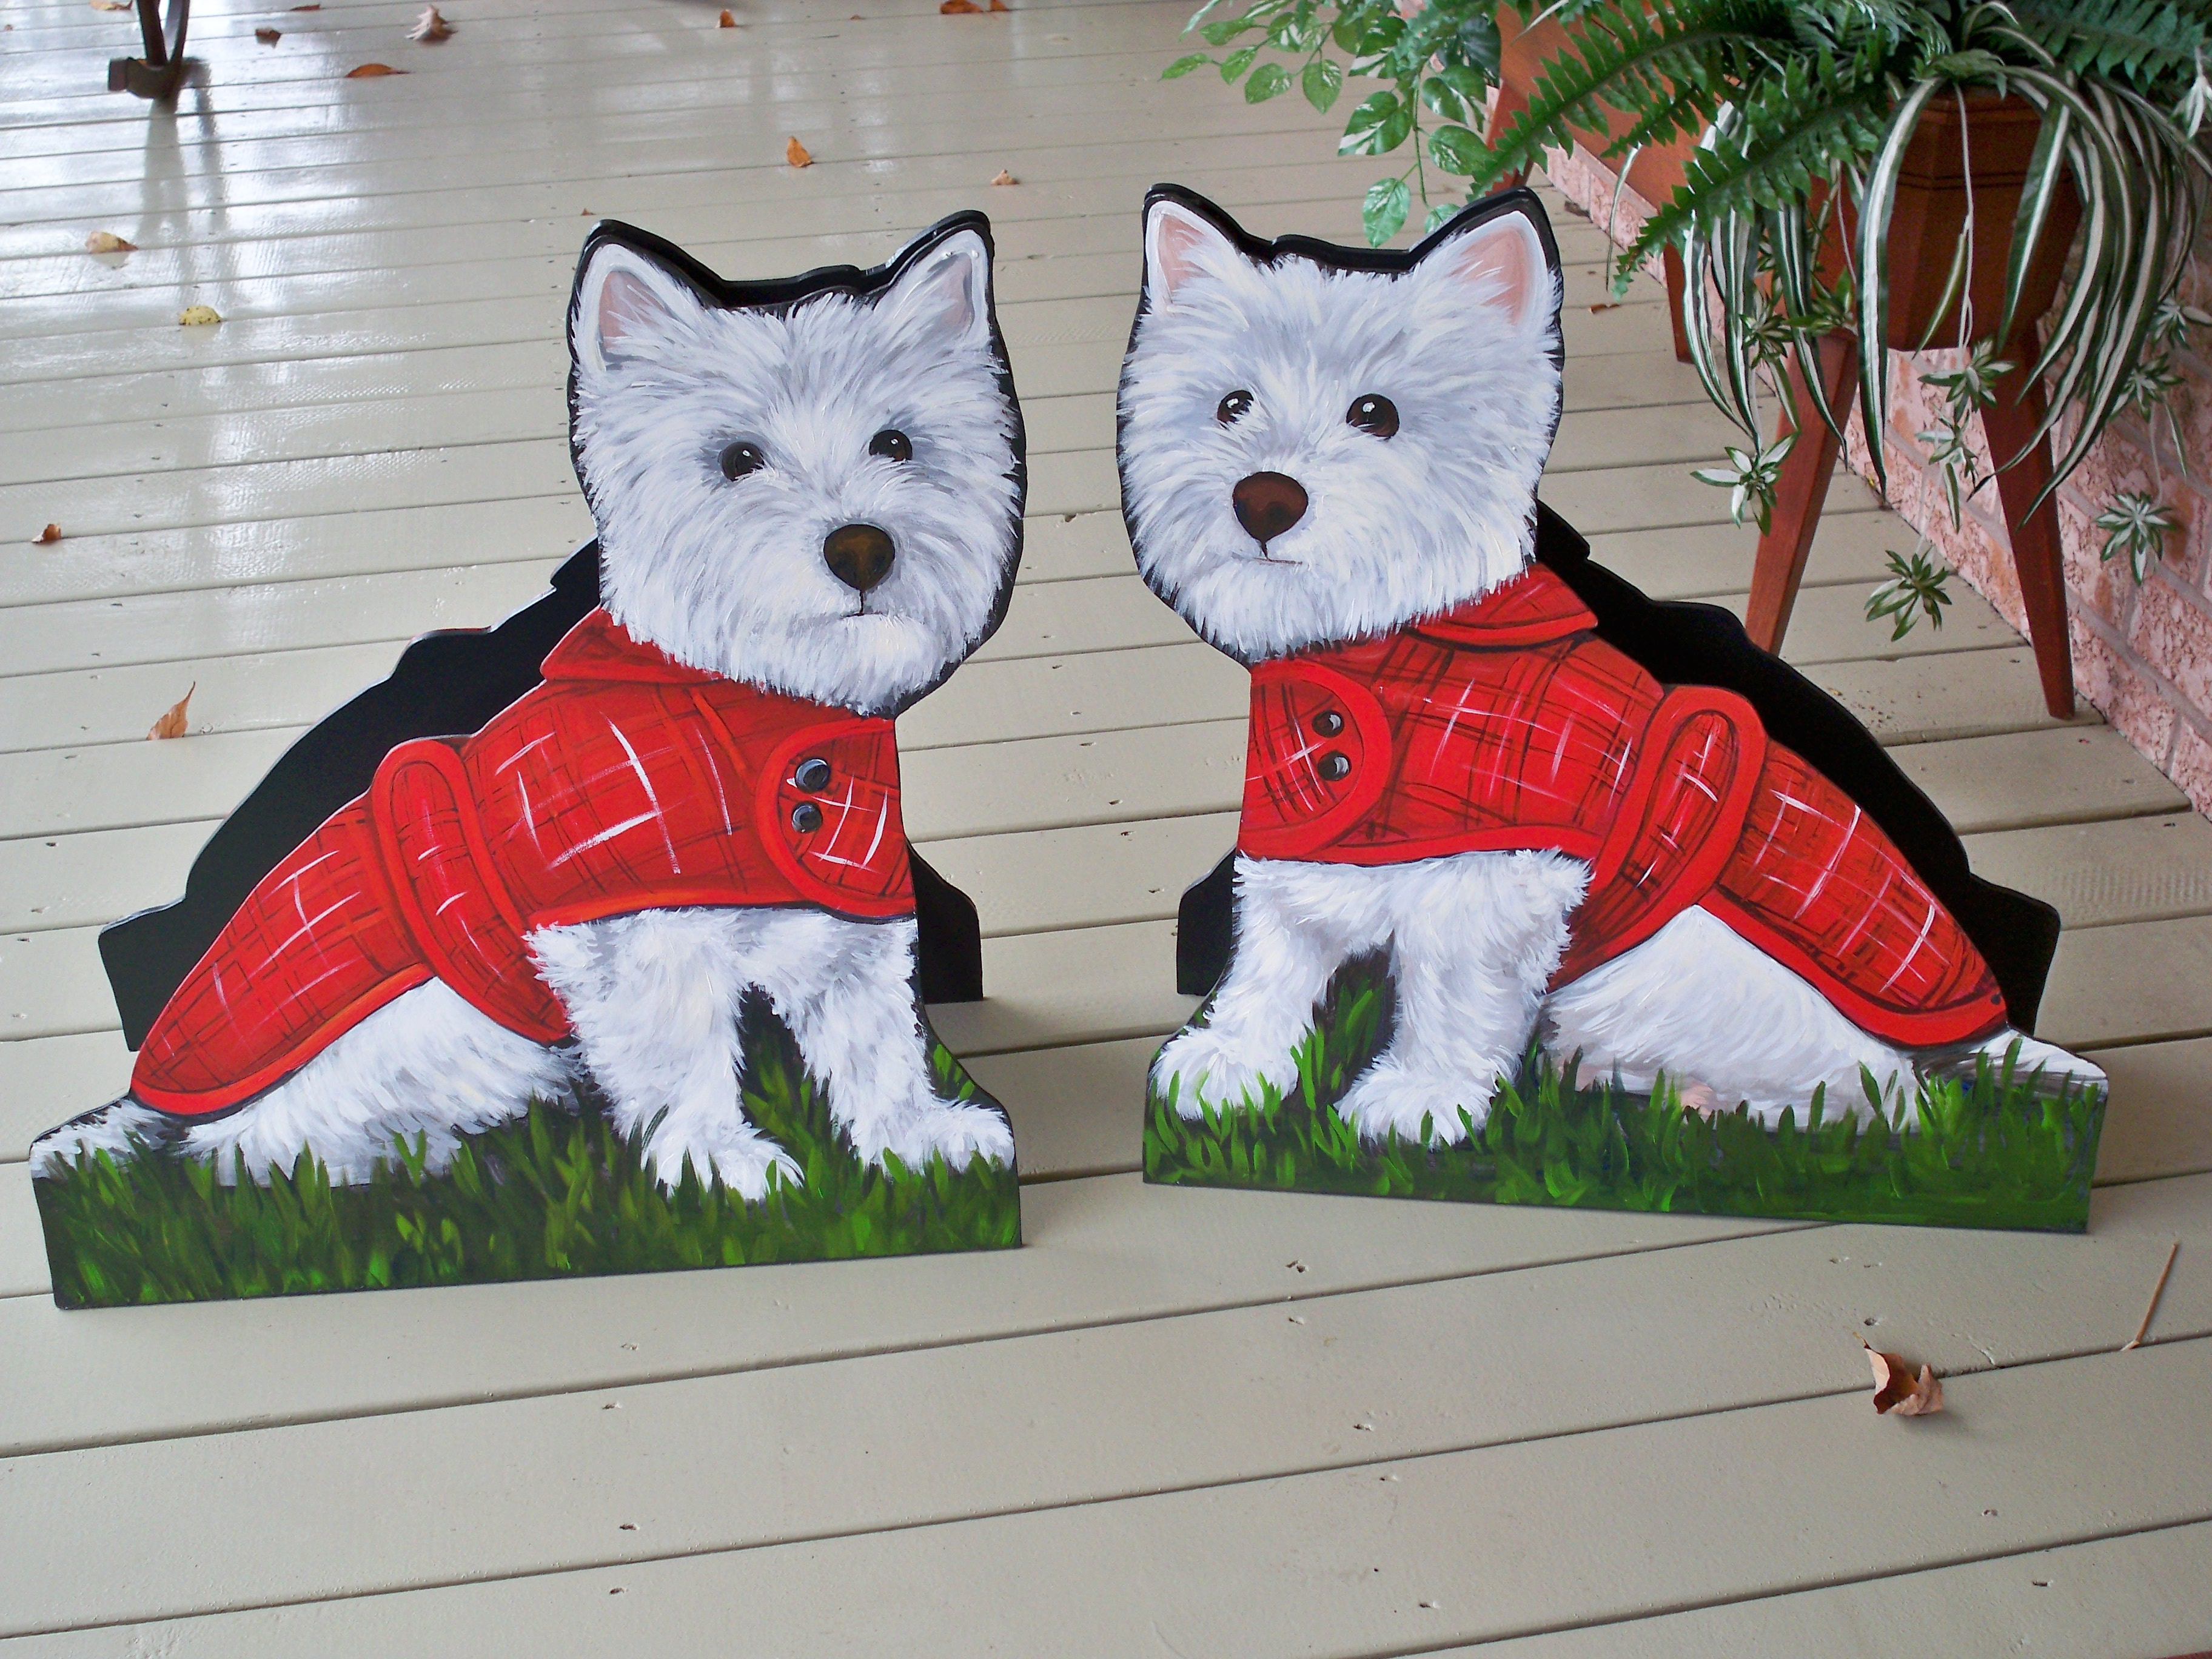 Murals By Marg Westies Resucue Table Top Signs 2011.jpg